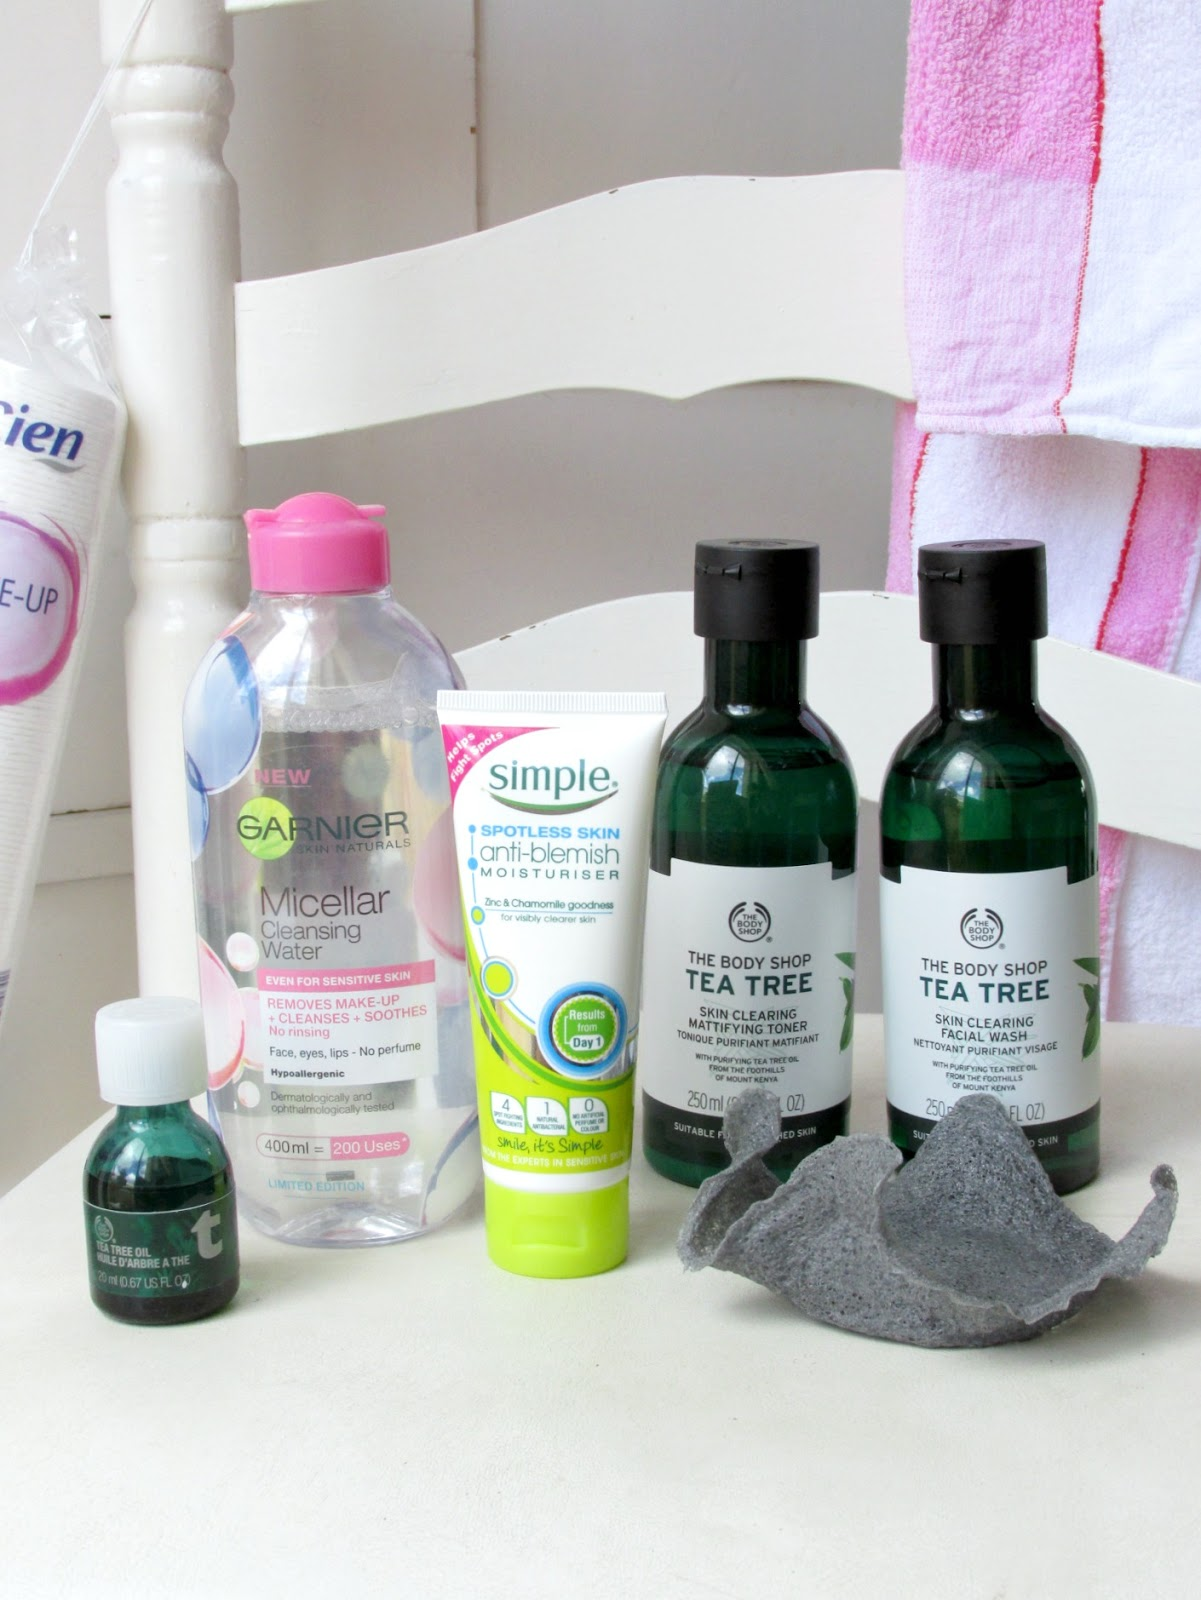 skin care routine for oily and blemished skin using products from The Body Shop, Simple, Garnier and The Konjac Sponge Co